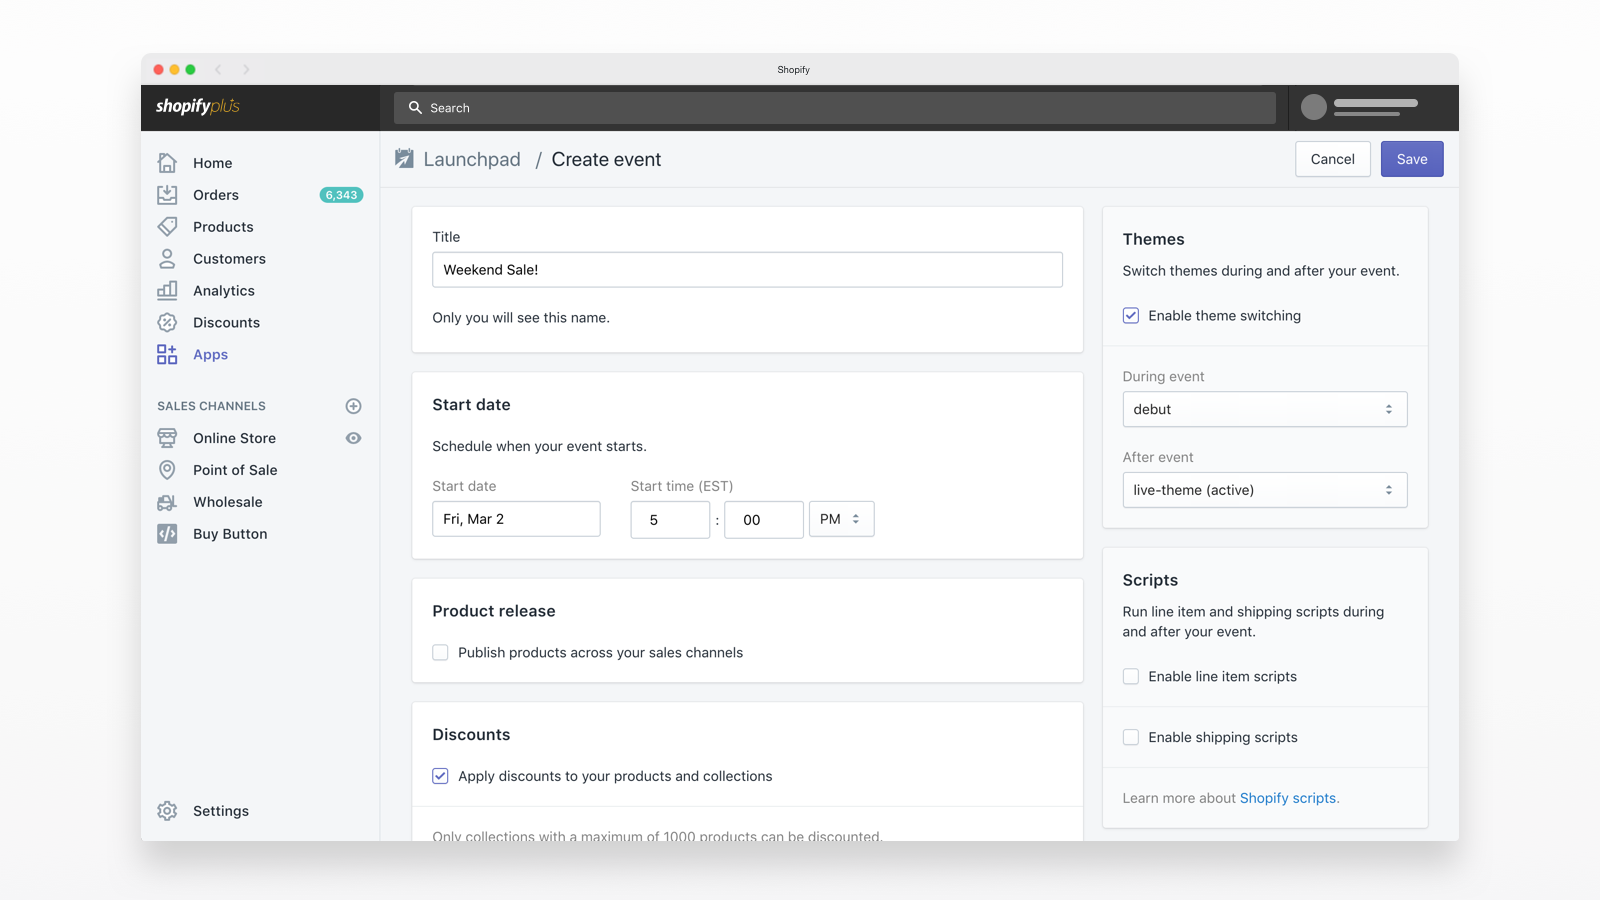 Automate your event checklist while executing a store event.